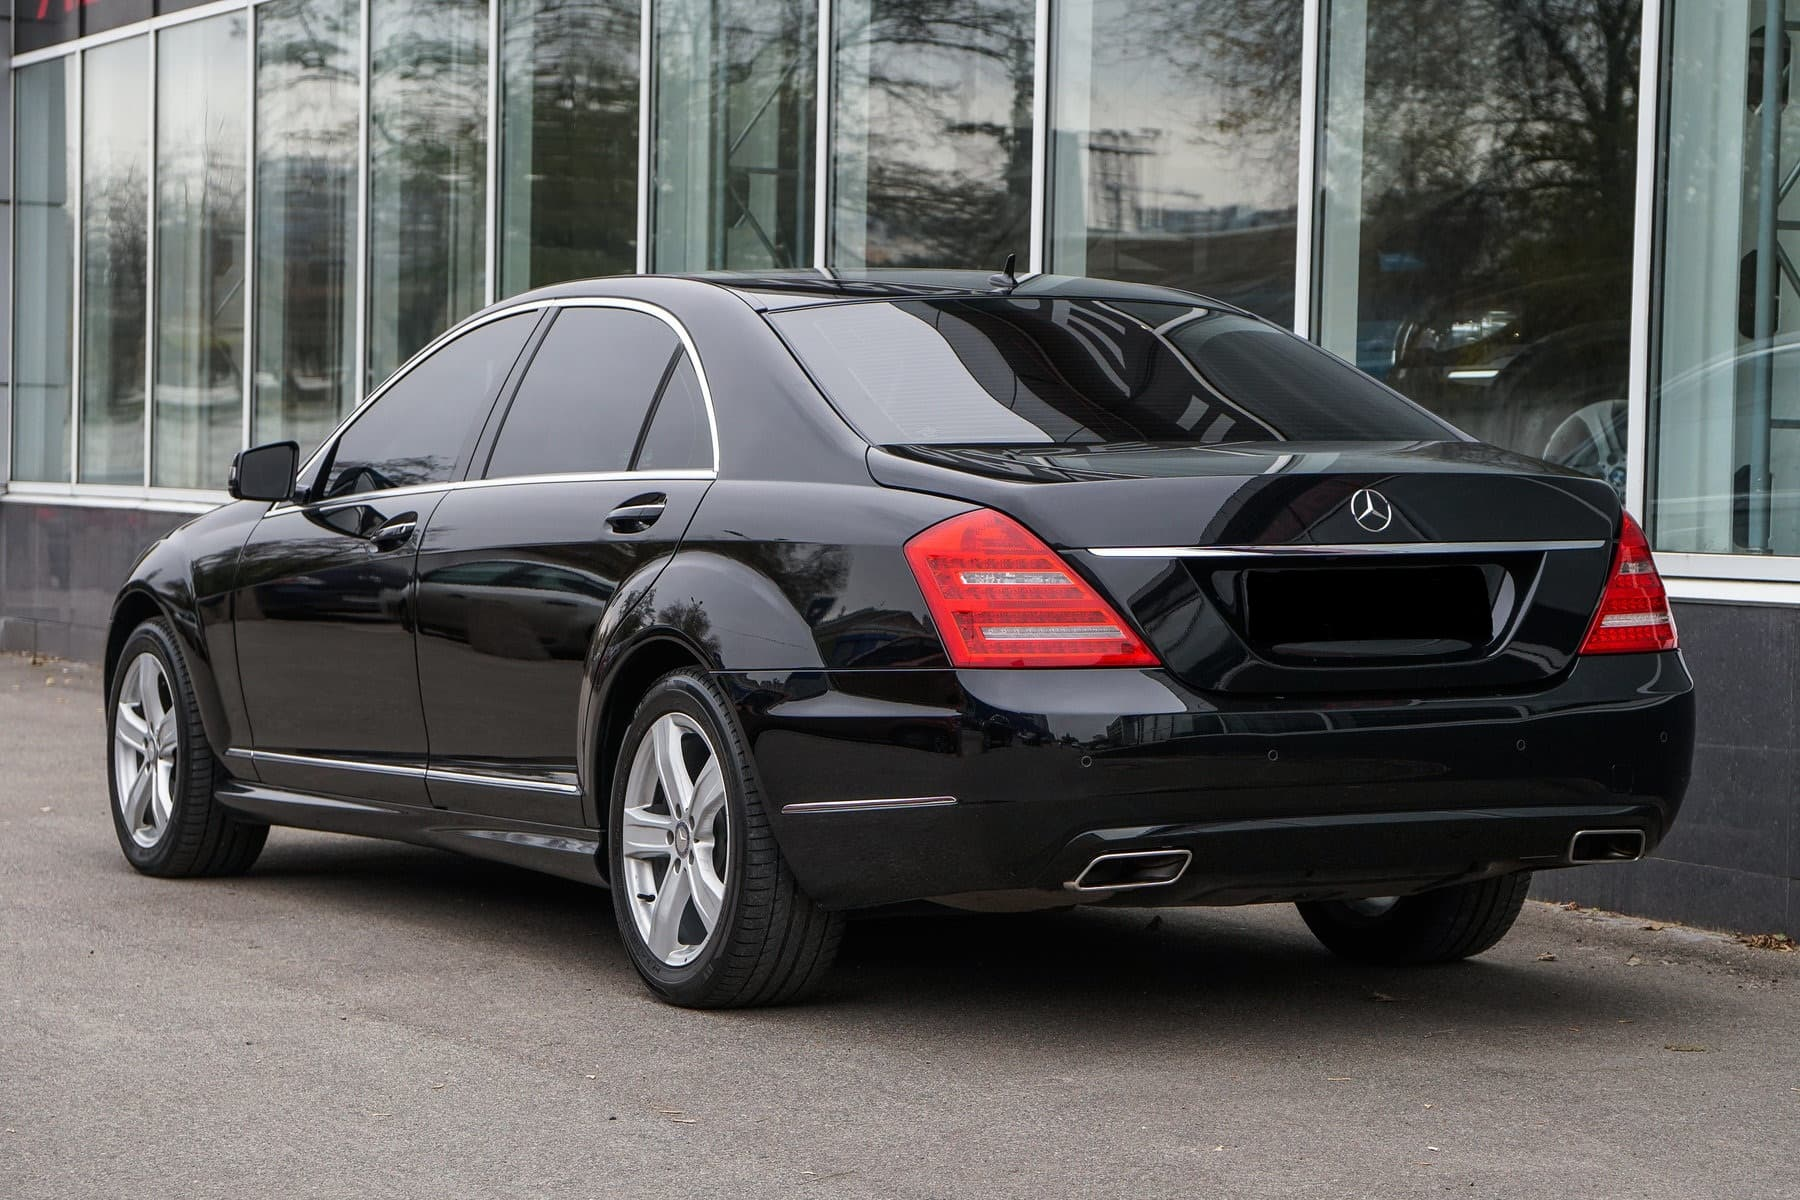 Mercedes-Benz S550 W221 4-matic - фото 4